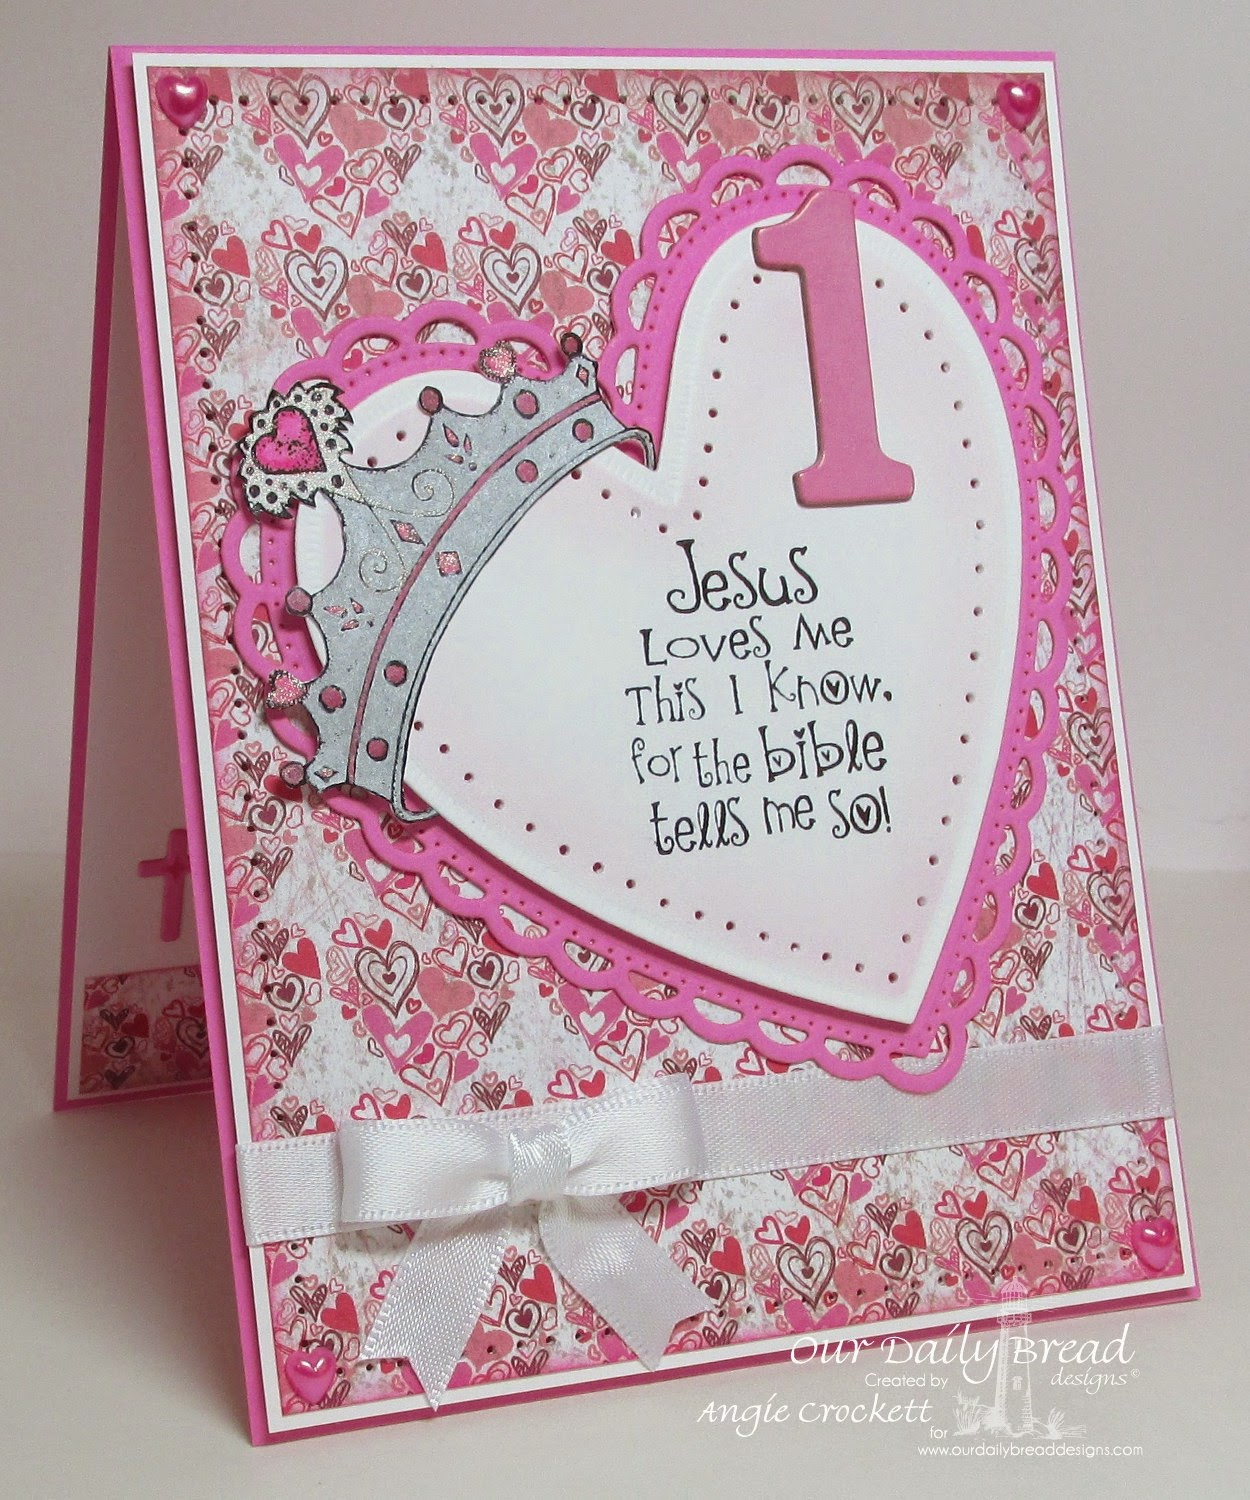 ODBD Princess, ODBD Custom Ornate Hearts Die Set, ODBD Heart and Soul Designer Paper Collection, Card Designer Angie Crockett